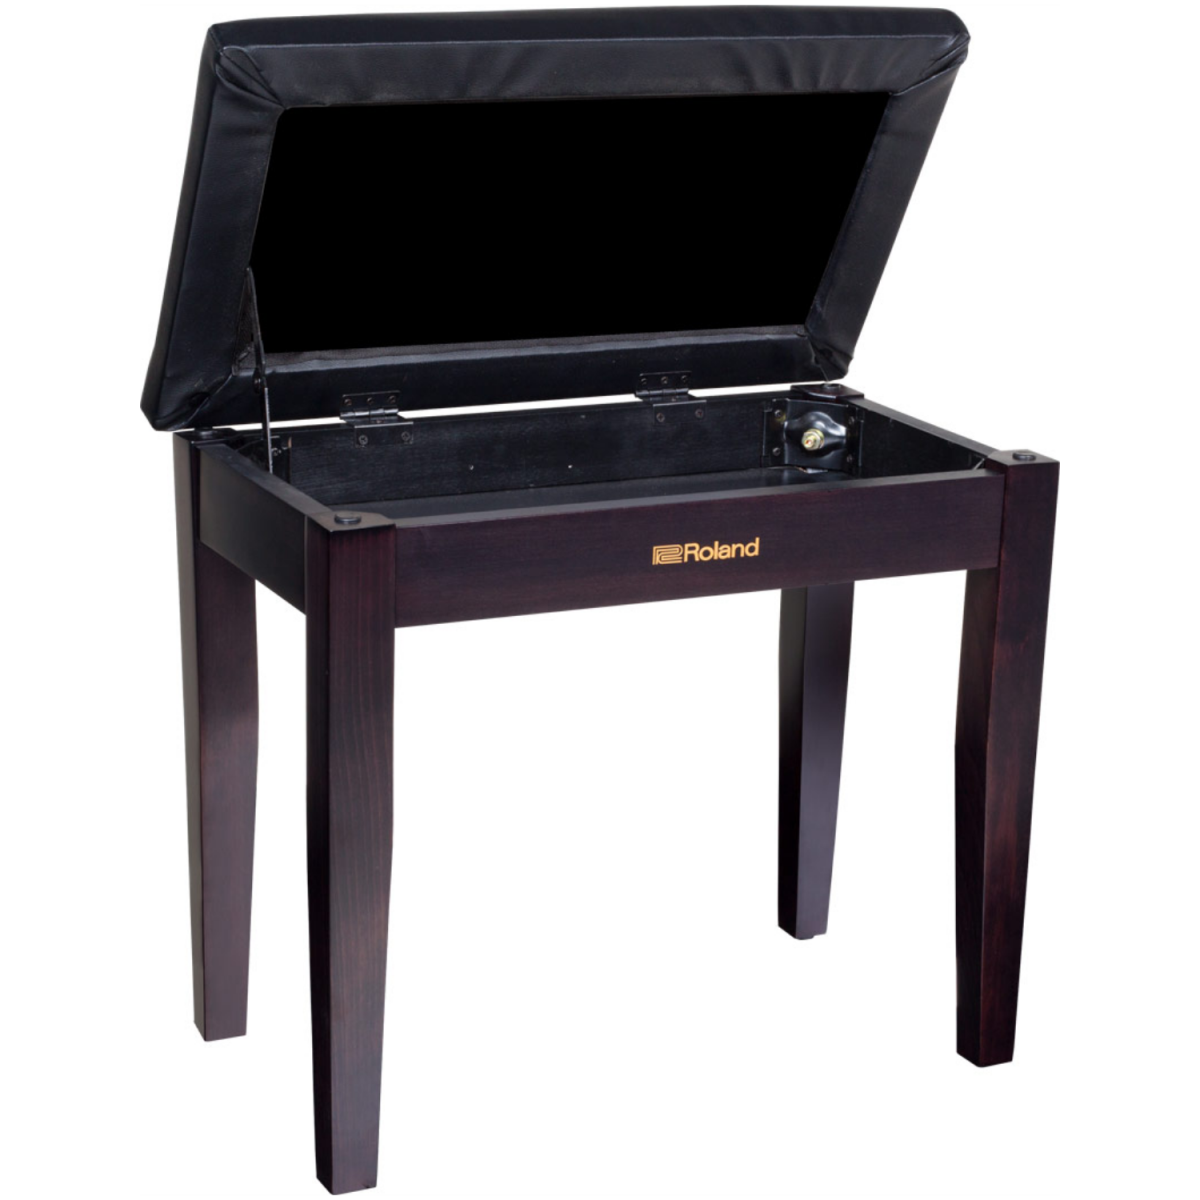 Roland - Piano Bench with Storage Compartment - Rosewood - RPB100RW-open